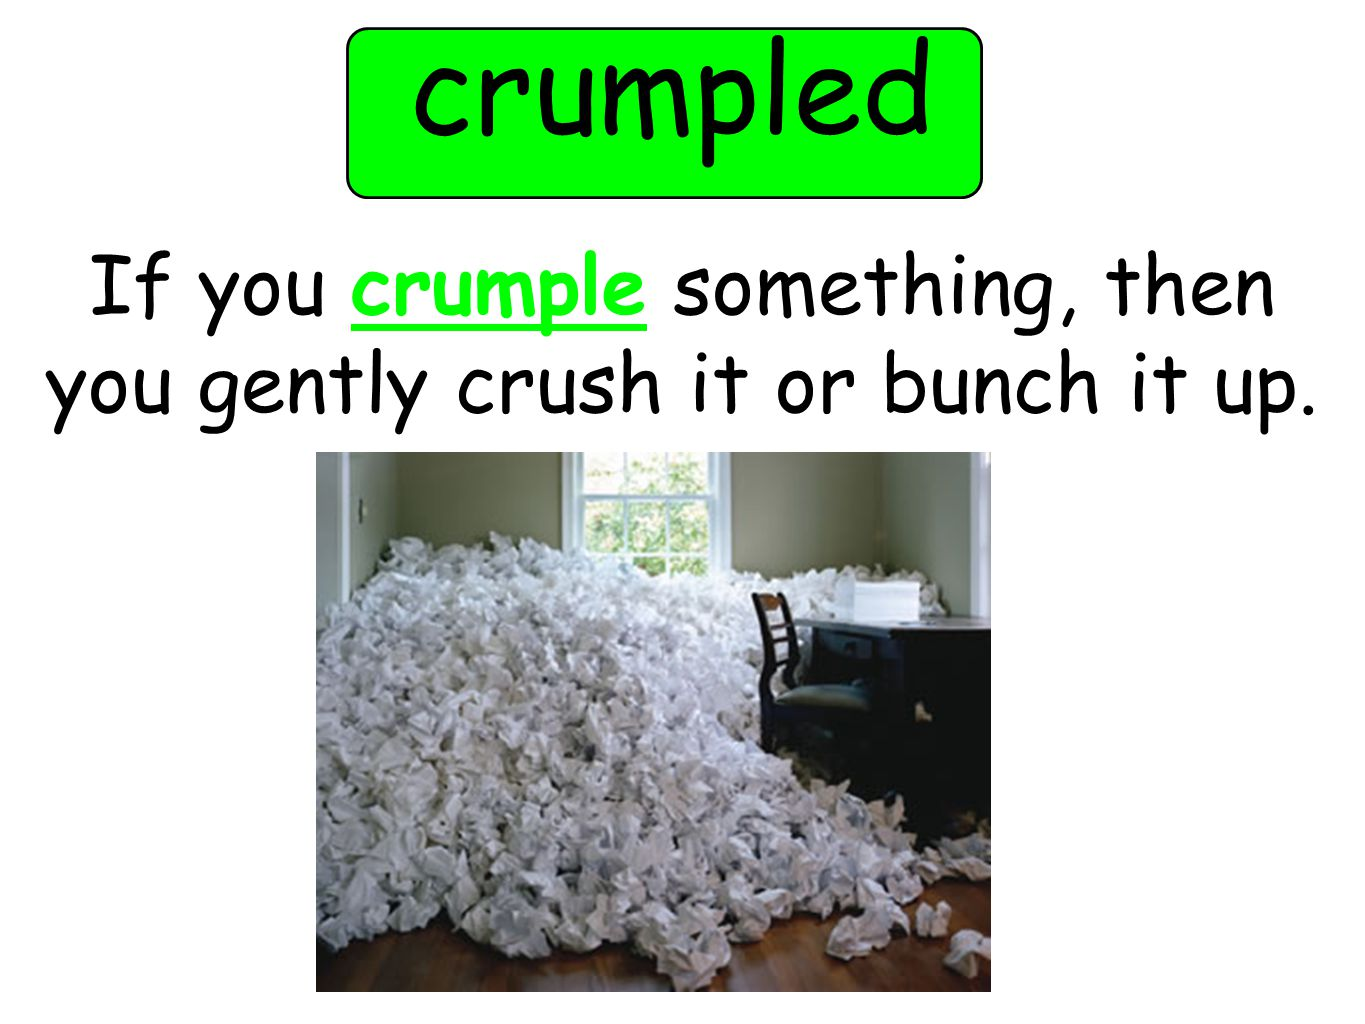 crumpled If you crumple something, then you gently crush it or bunch it up.